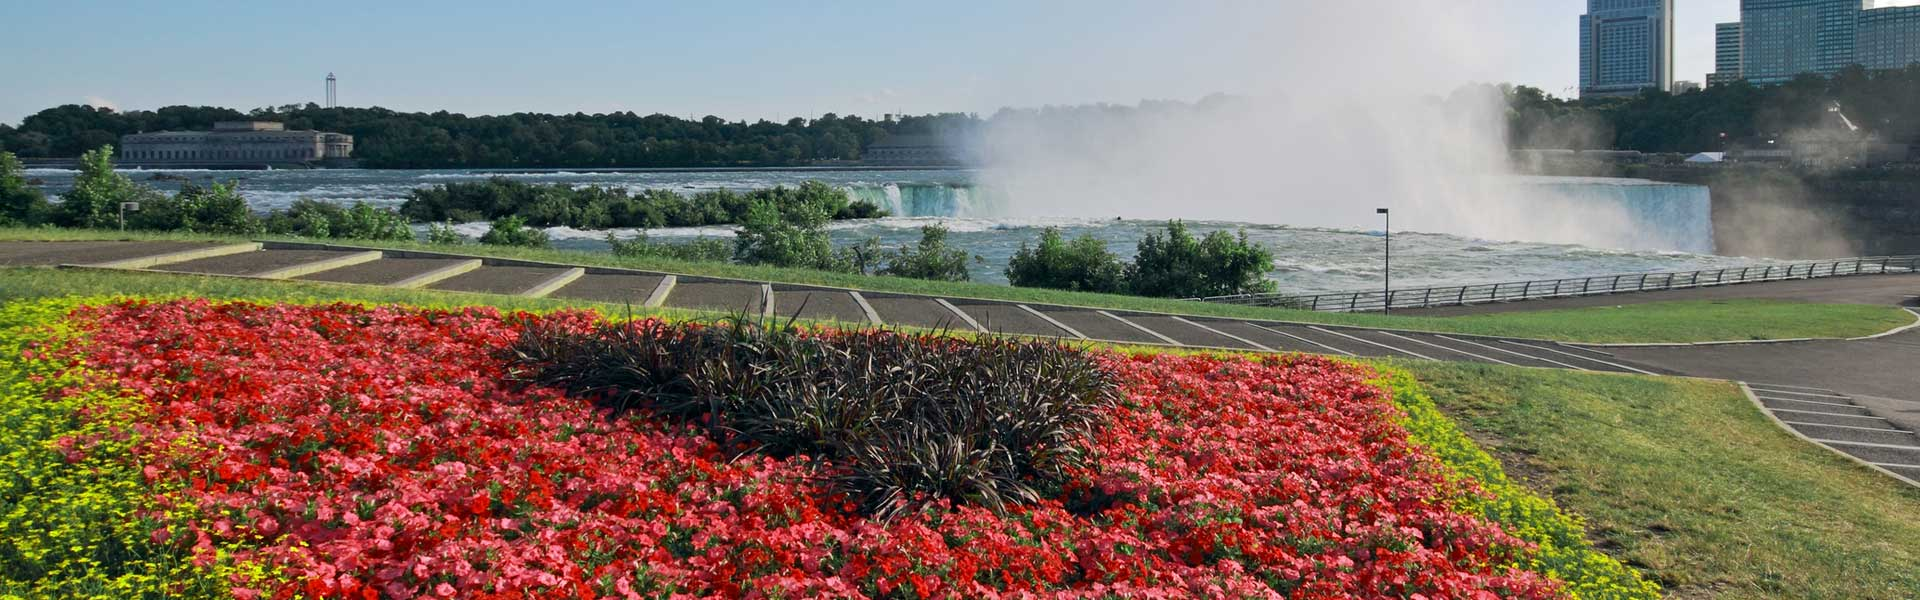 THINGS TO DO IN NIAGARA FALLS NY OVER THE WEEKEND